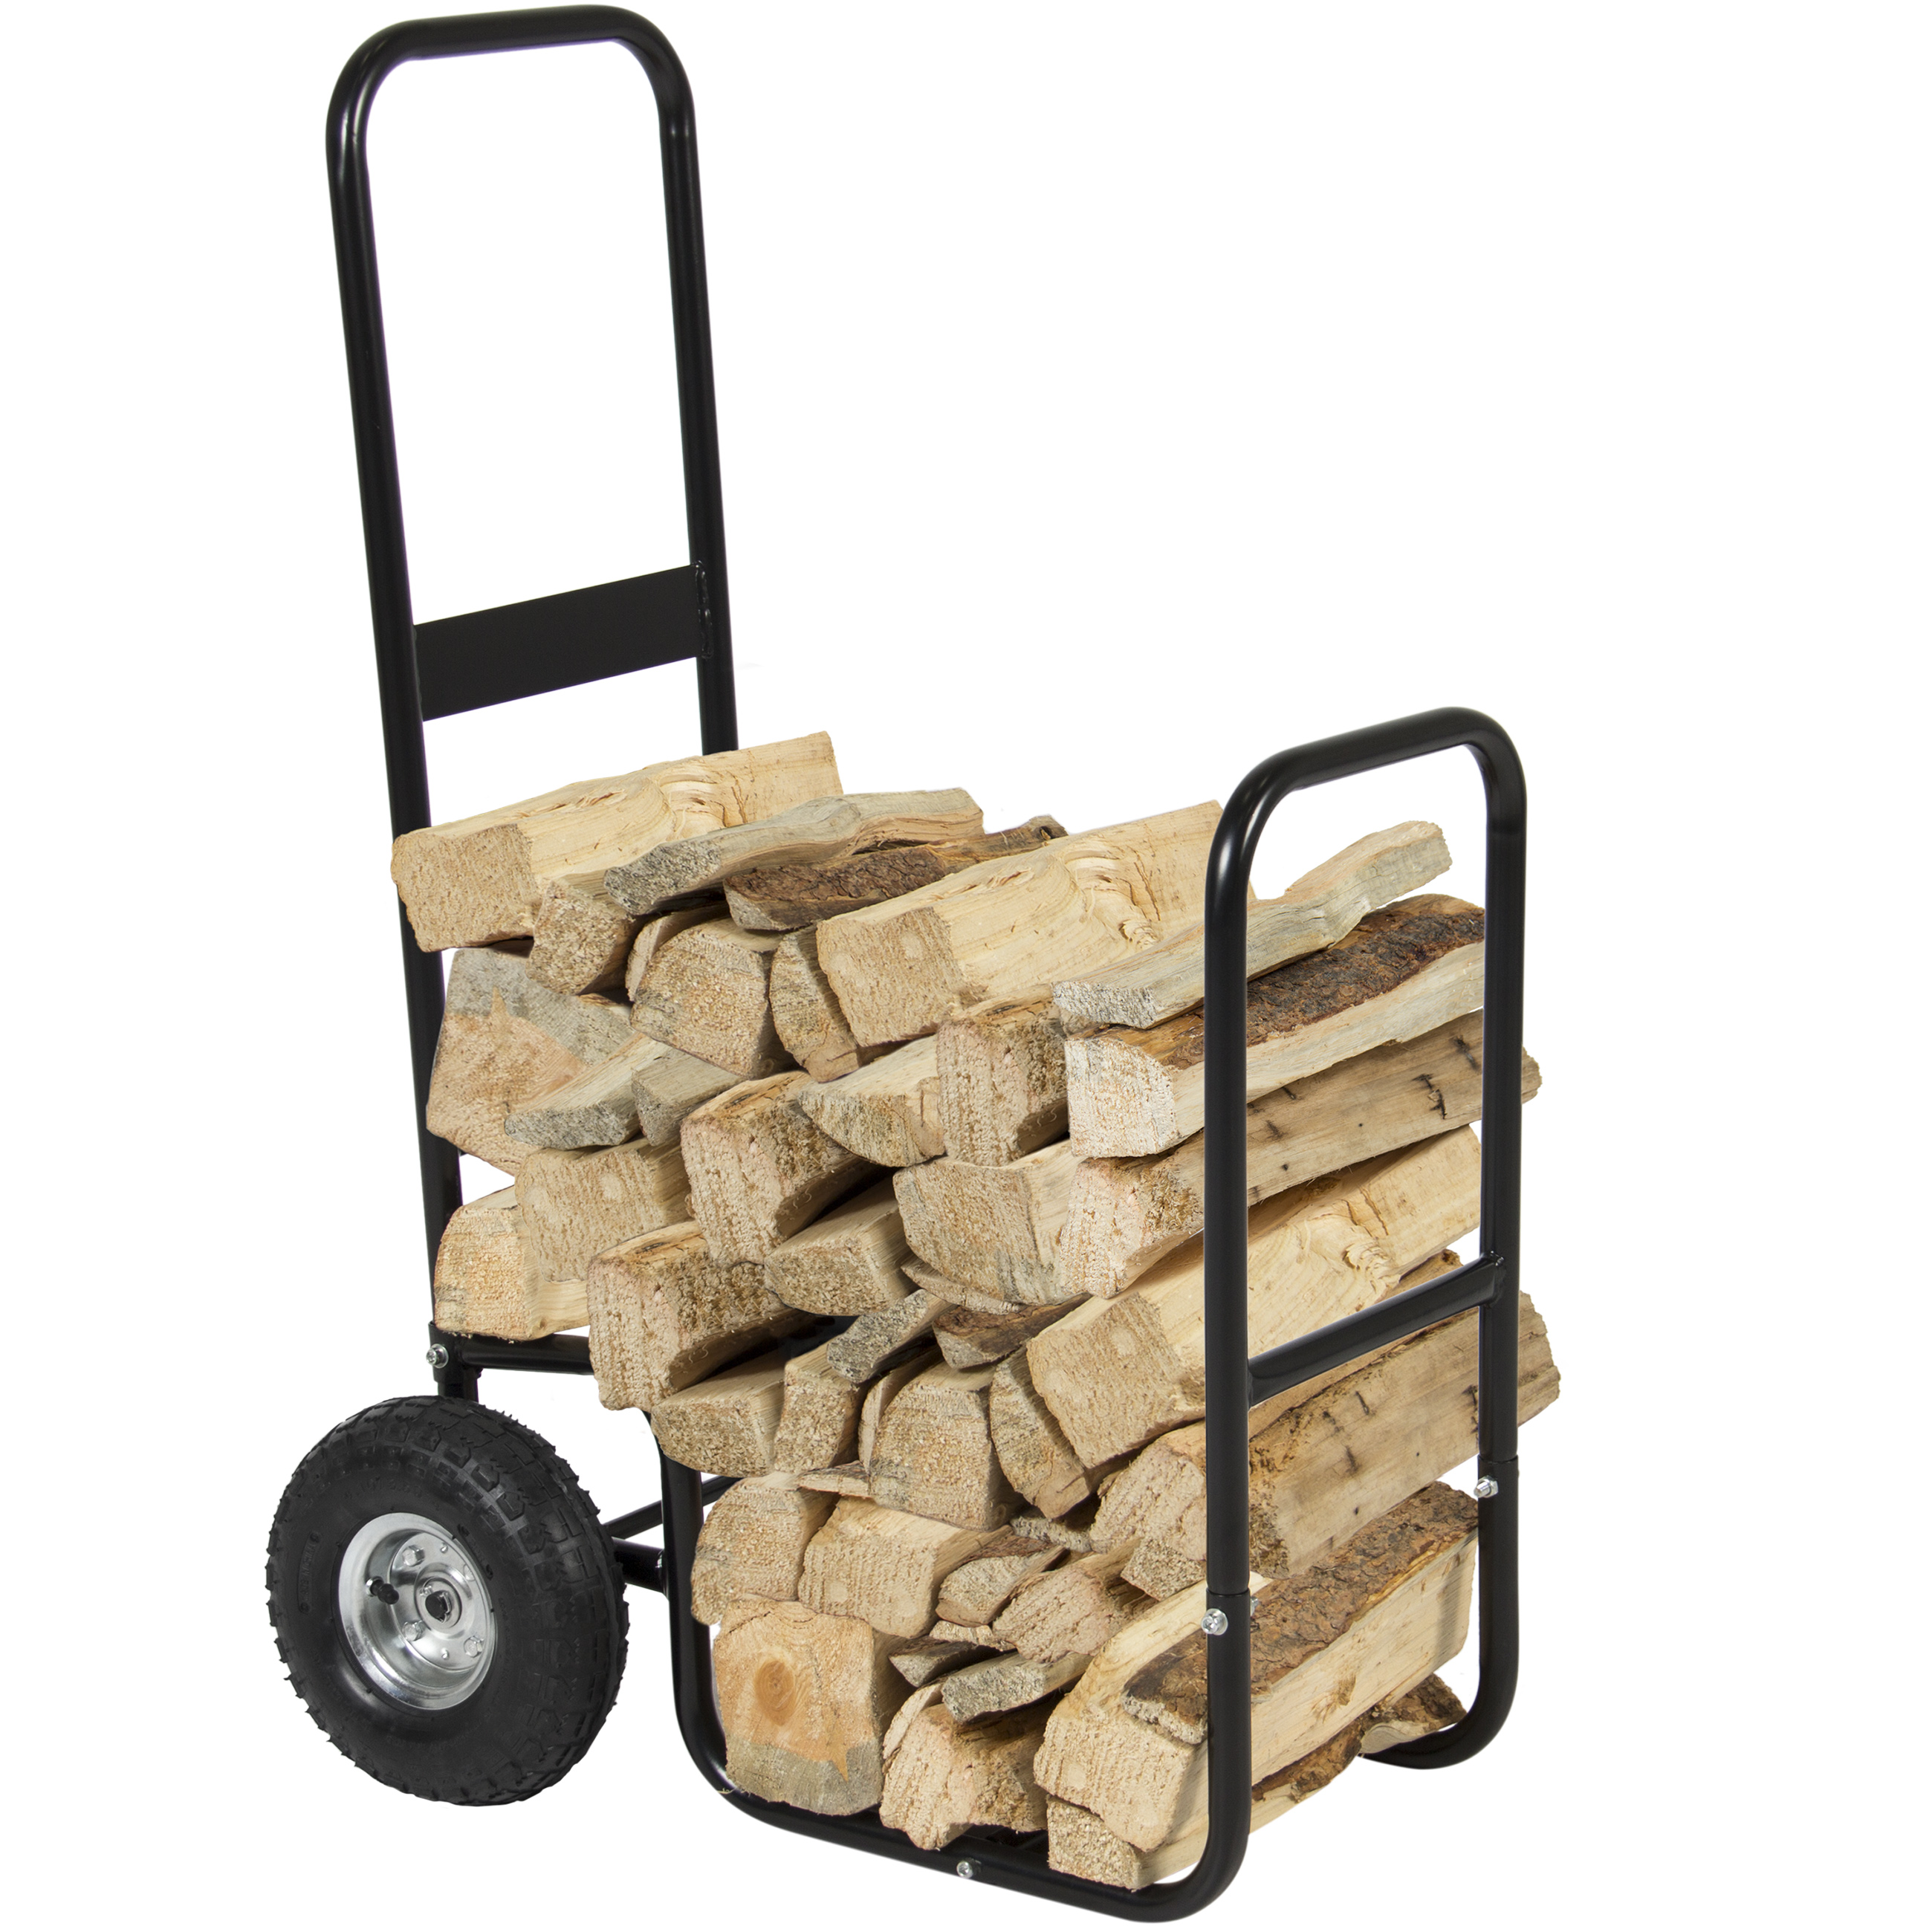 Free Shipping. Buy Best Choice Products Firewood Cart Log Carrier Fireplace Wood Mover Hauler Rack Caddy Rolling Dolly at Walmart.com